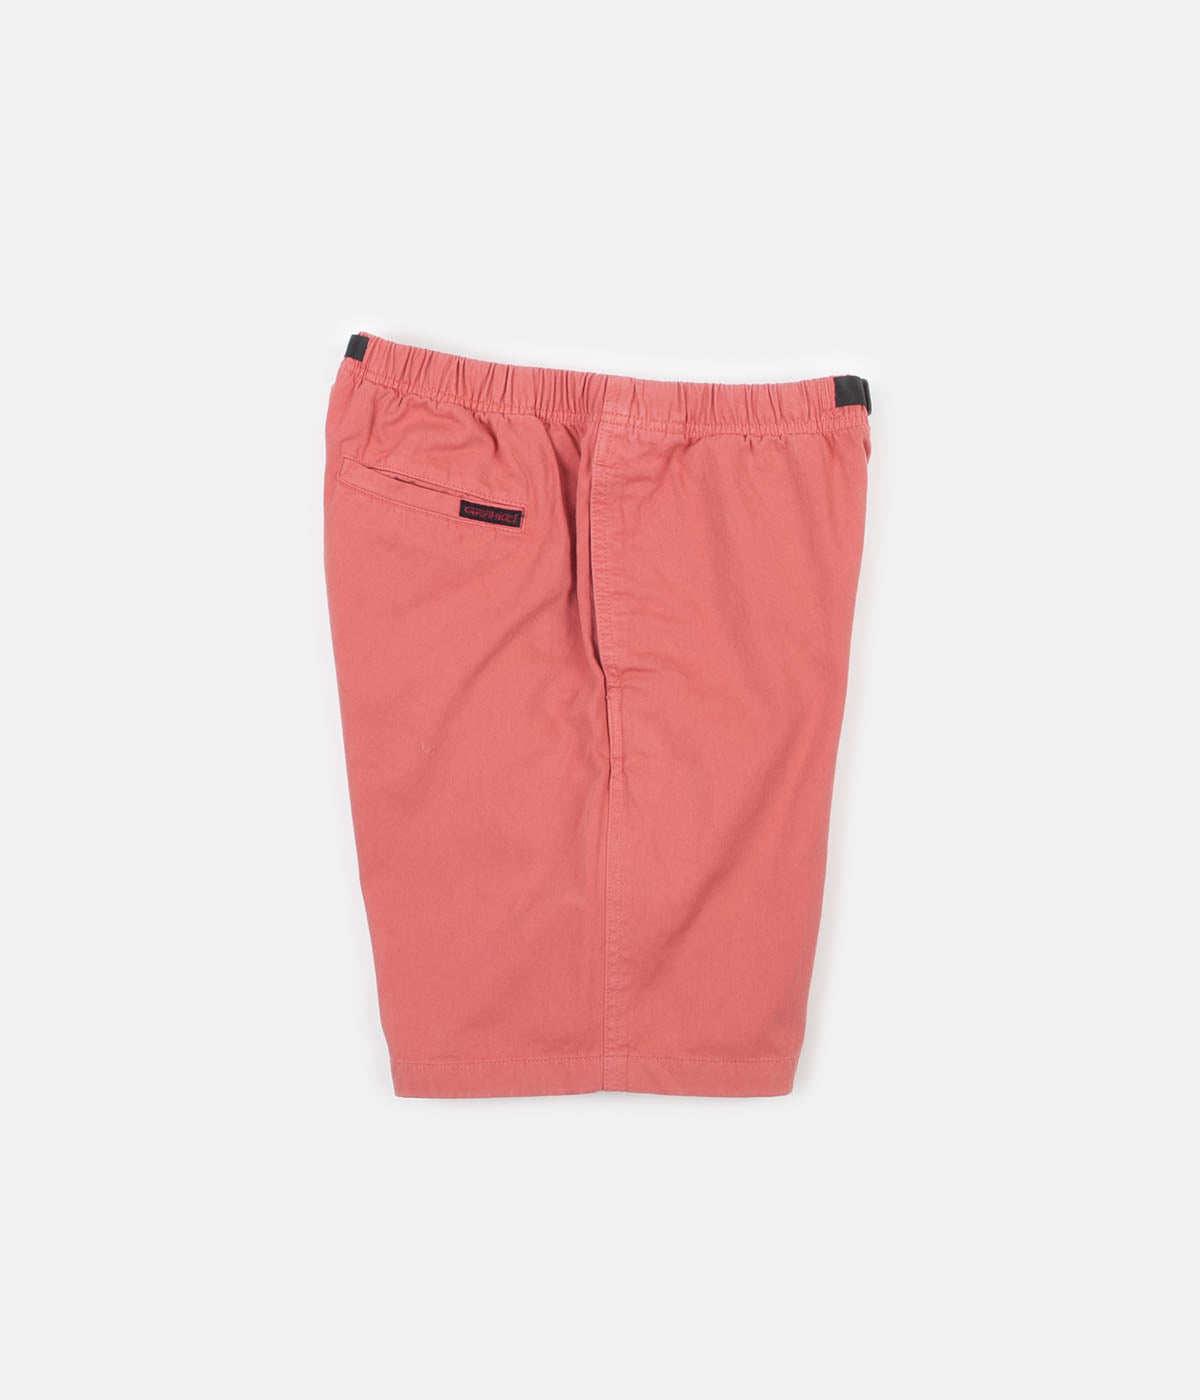 Gramicci Japan G-Shorts - Plum